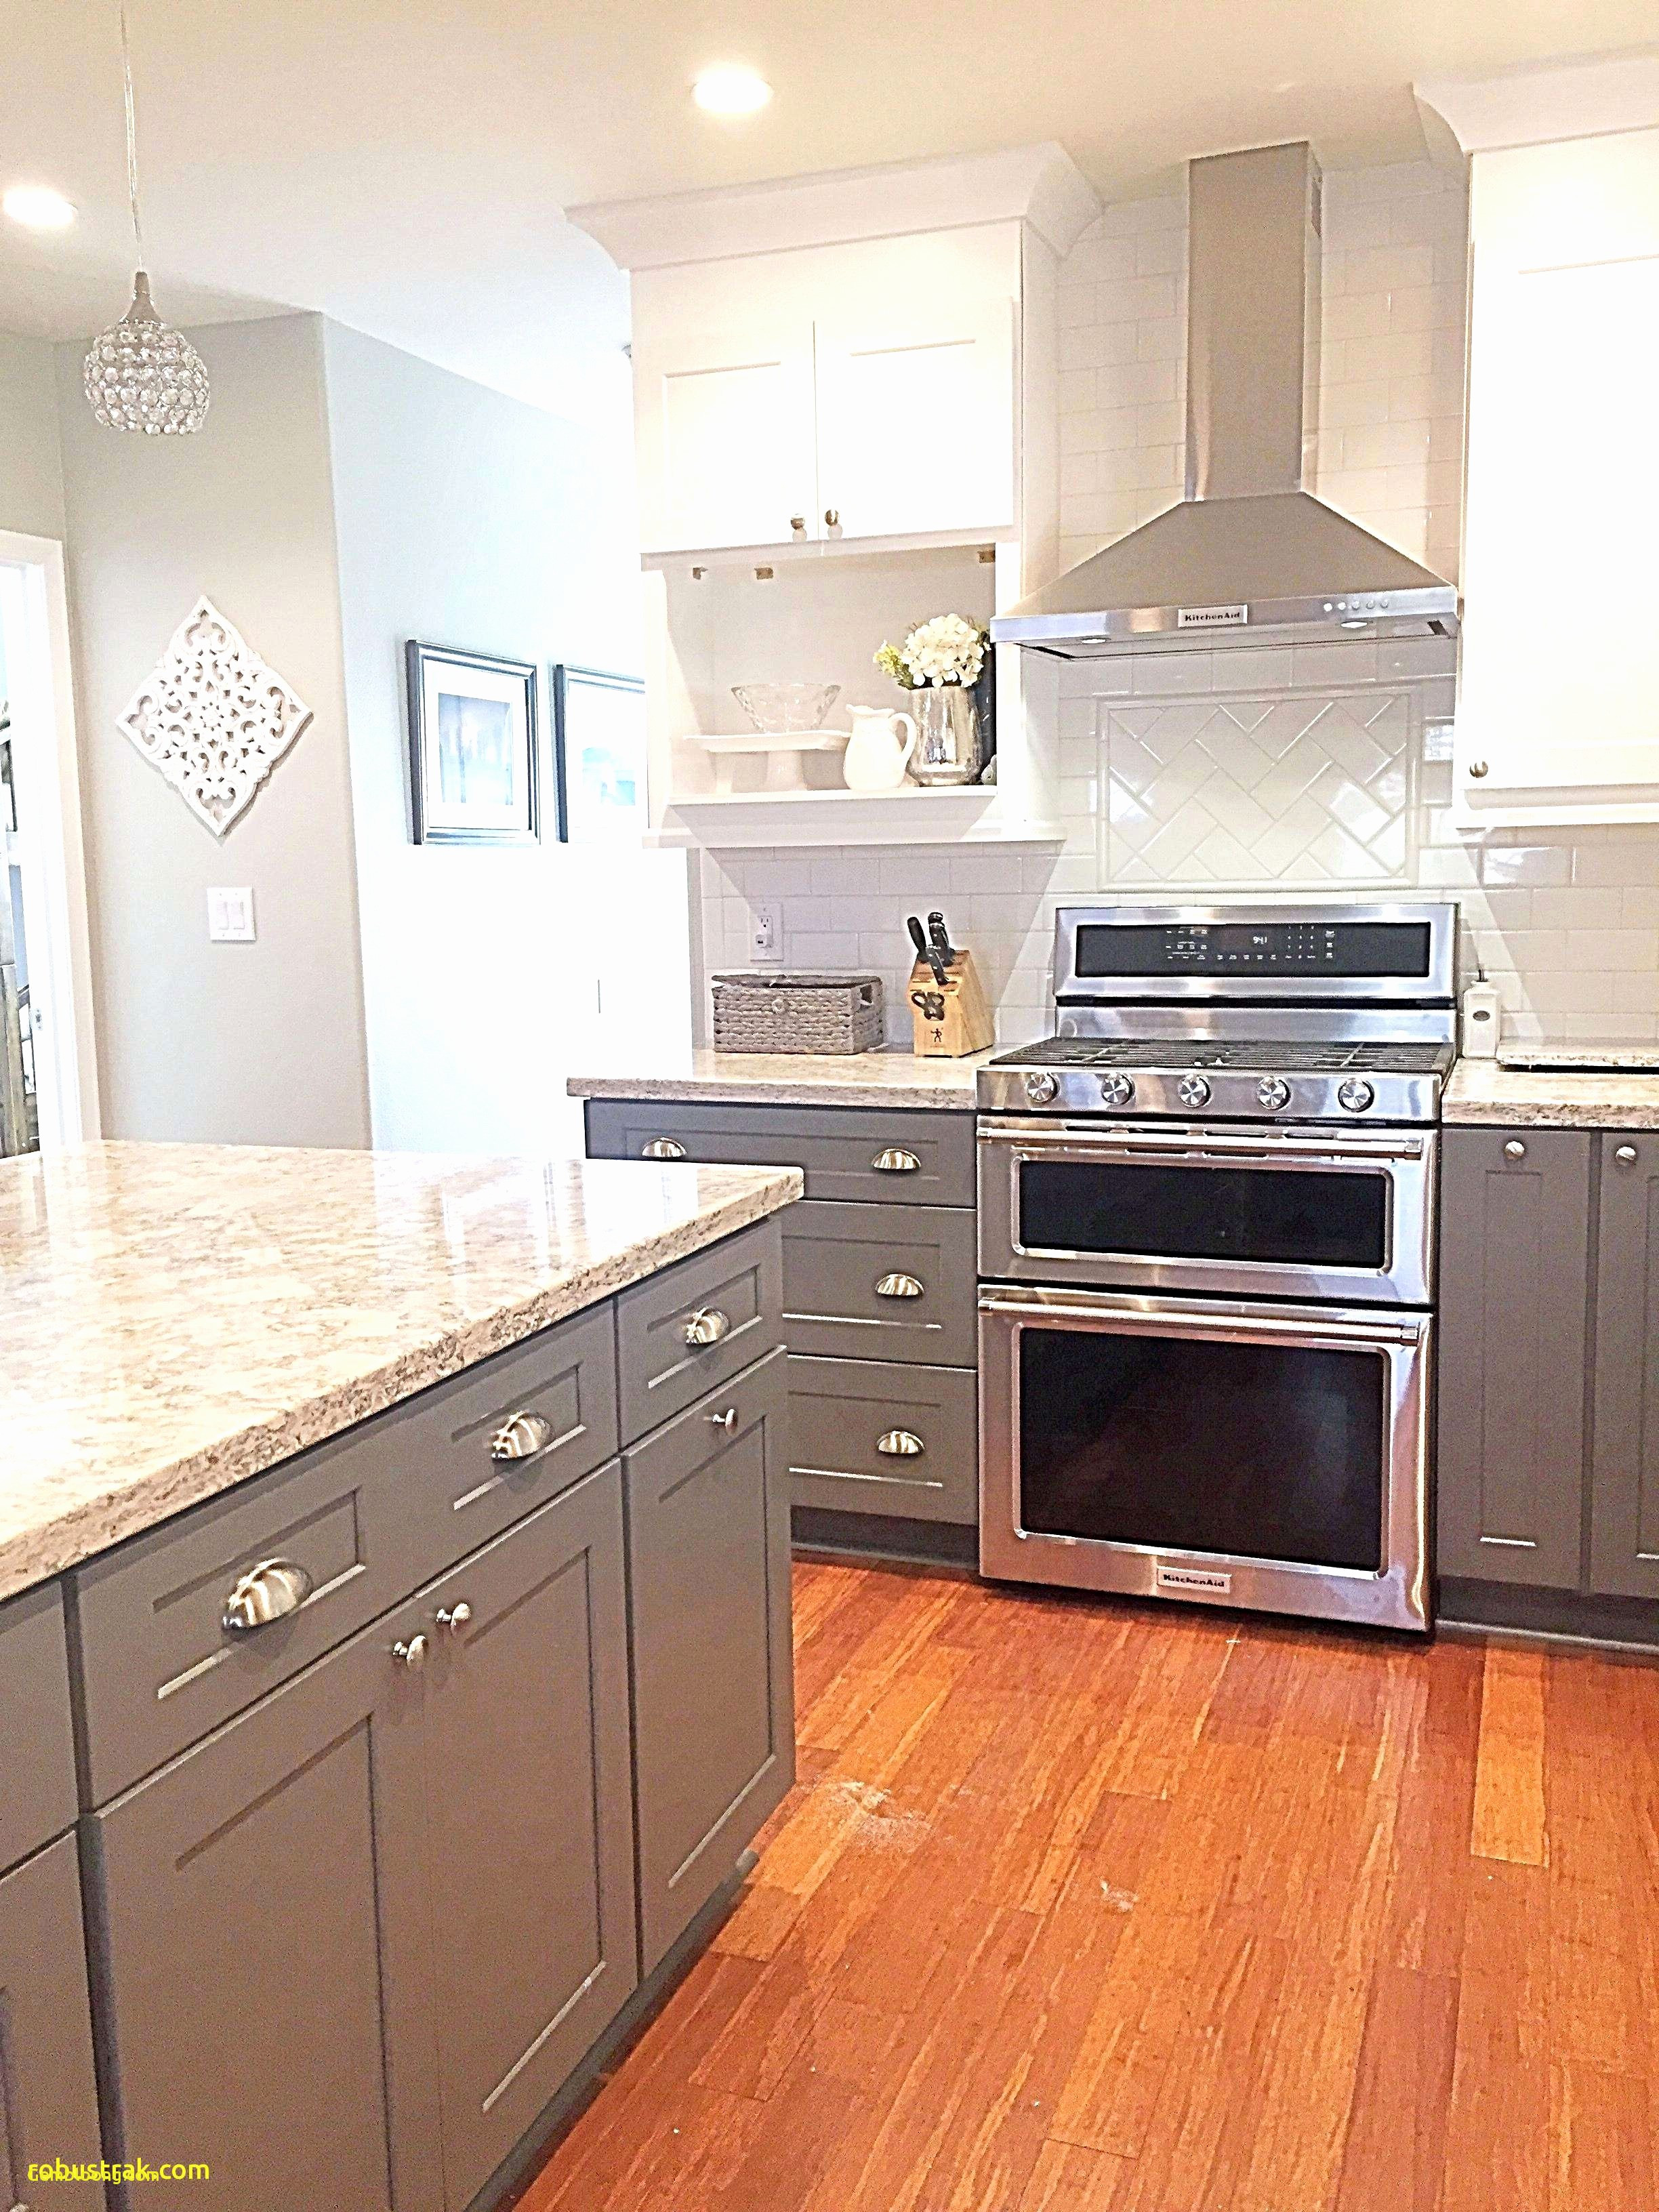 arizona hardwood flooring scottsdale of 4 awesome bedroom furniture stores phoenix az over night faq with kitchen colors with dark cabinets best colored kitchen cabinets lovely kitchen cabin